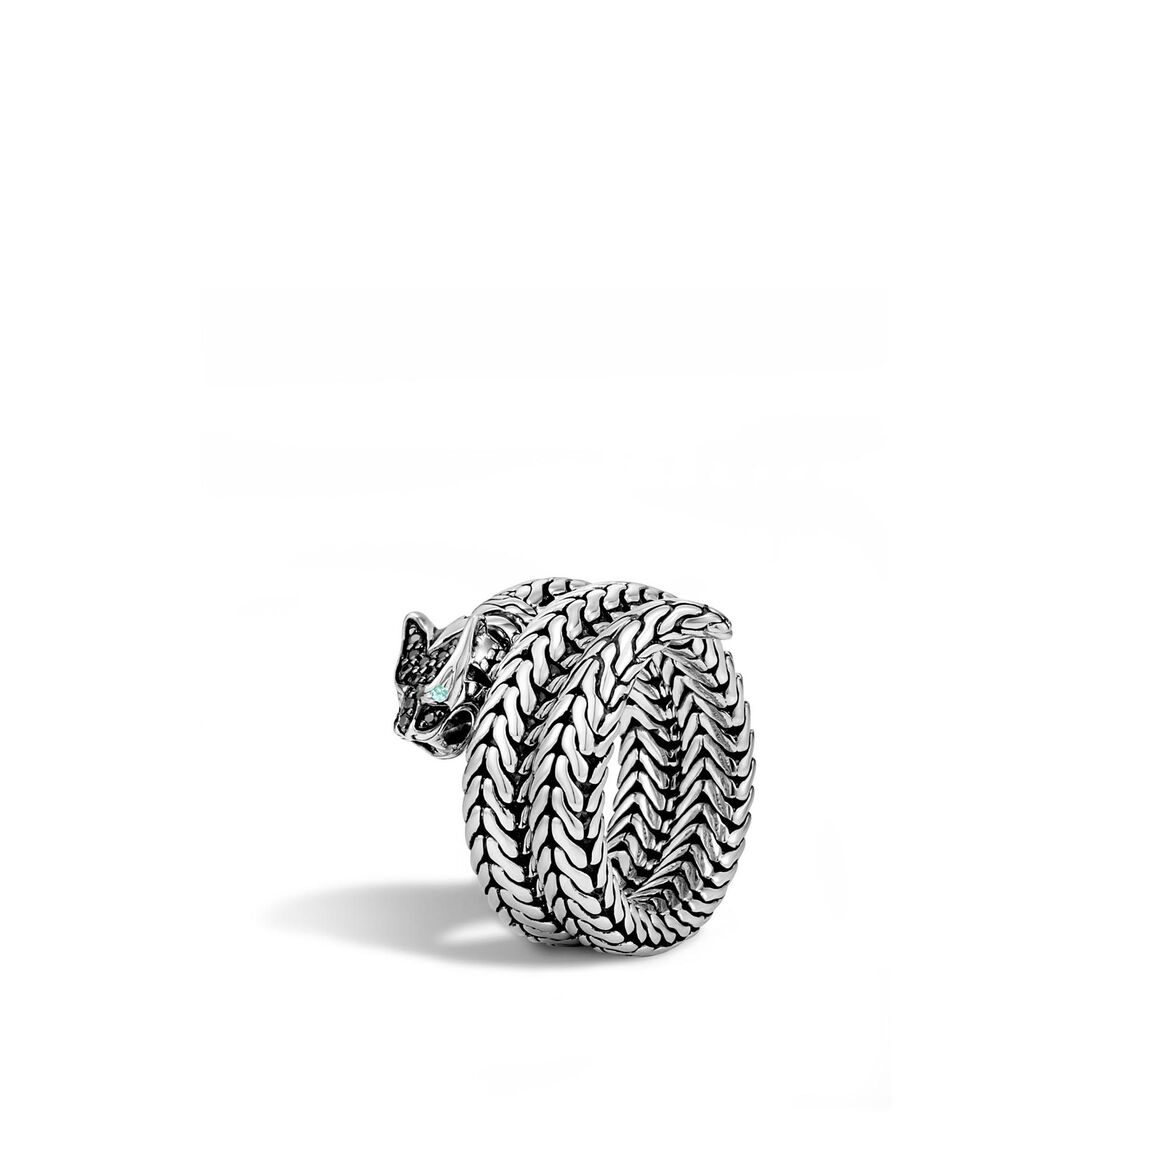 Legends Macan  Coil Ring in Silver with Gemstone